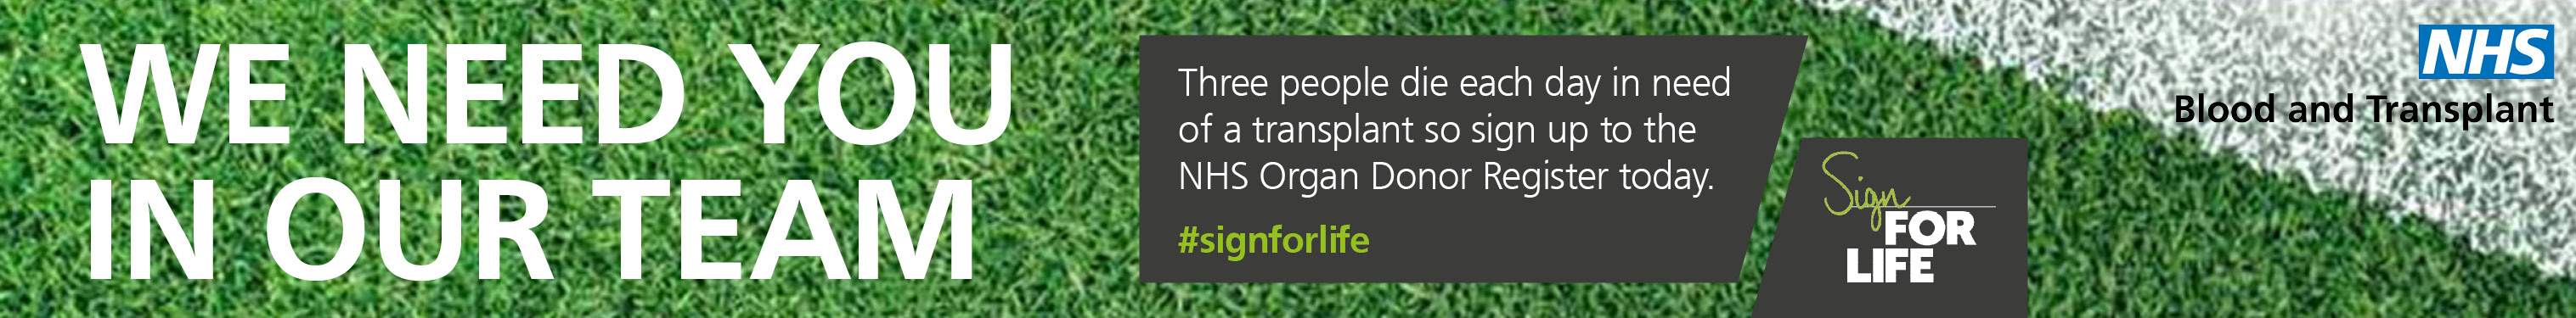 Sign For Life leaderboard banner